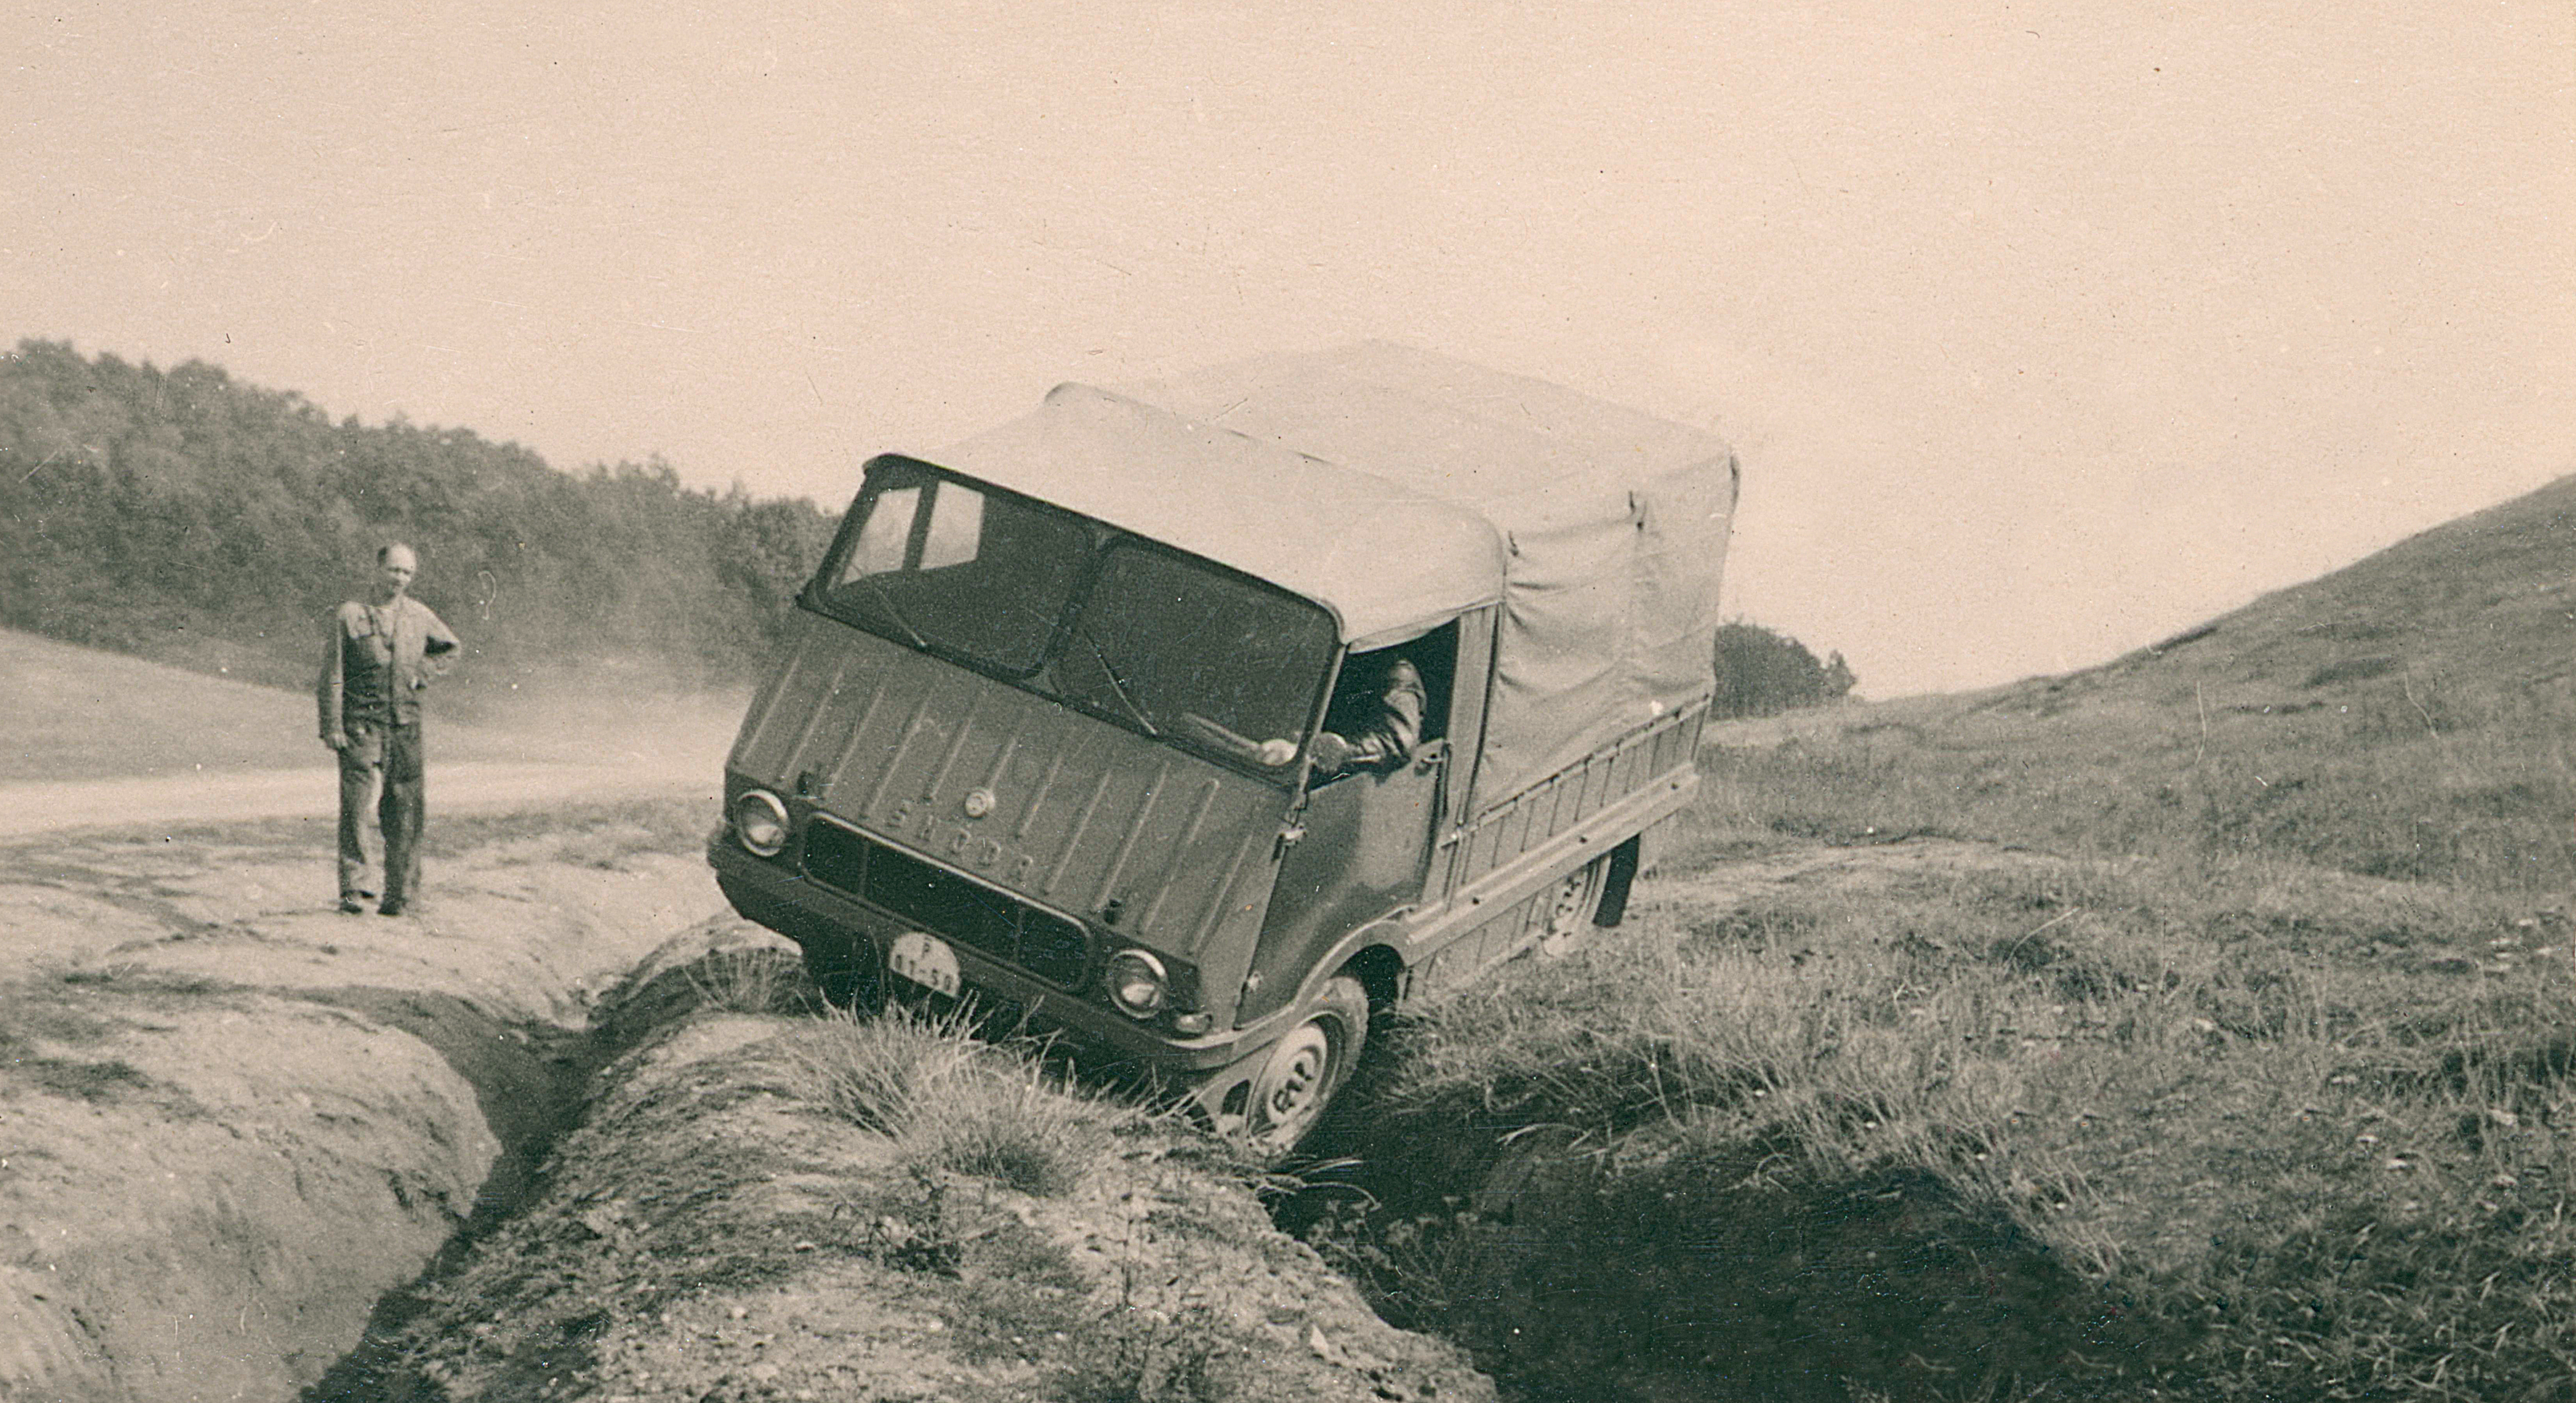 Lesser-known models from SKODA AUTO's 125-year history: Type 998 'Agromobil' from 1962 - Image 6